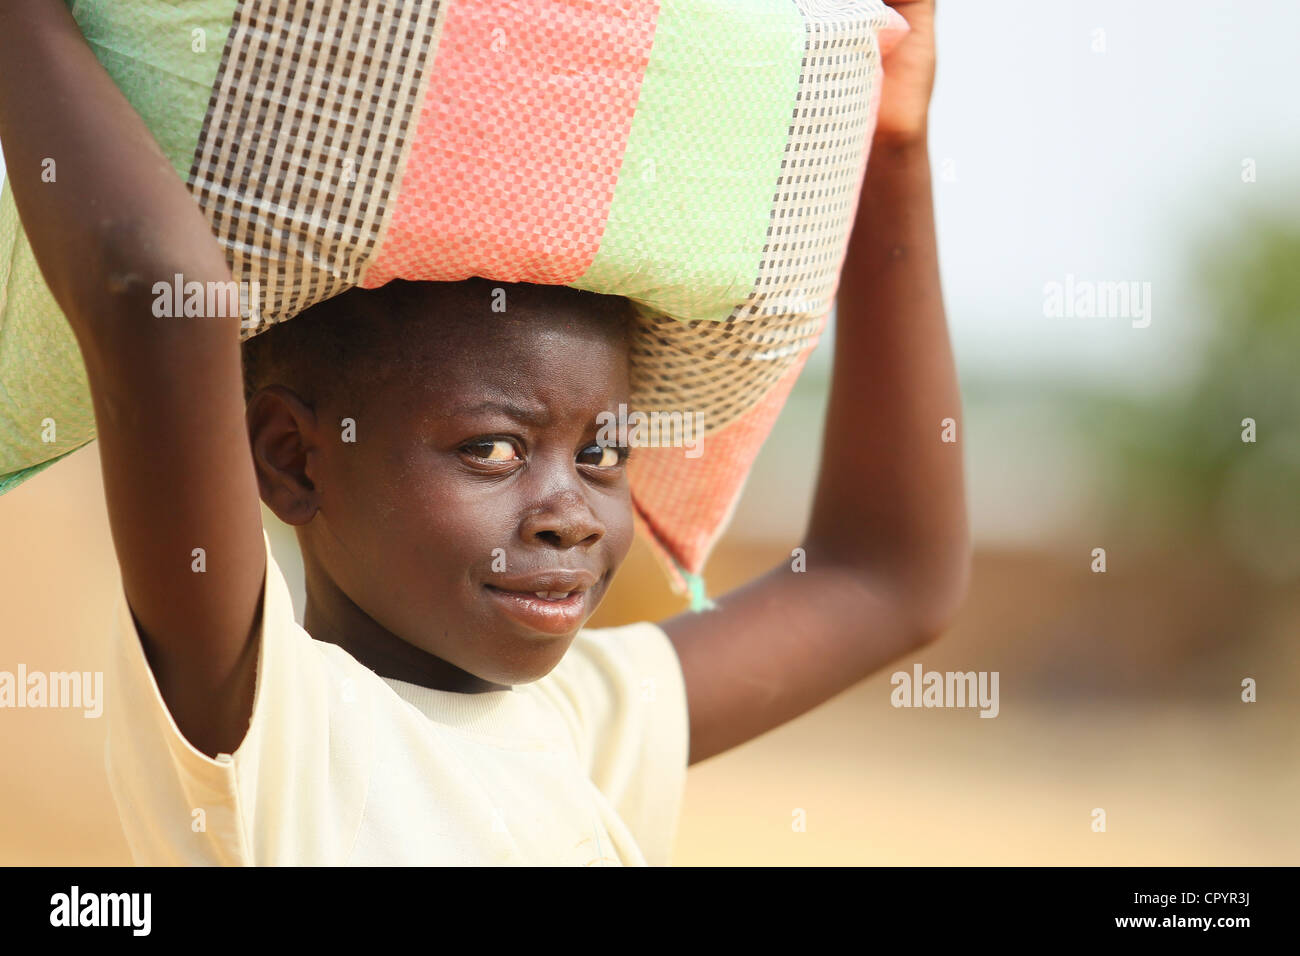 A girl carries a load on top of her head in N'Djamena, Chad on Thursday June 10, 2010. - Stock Image